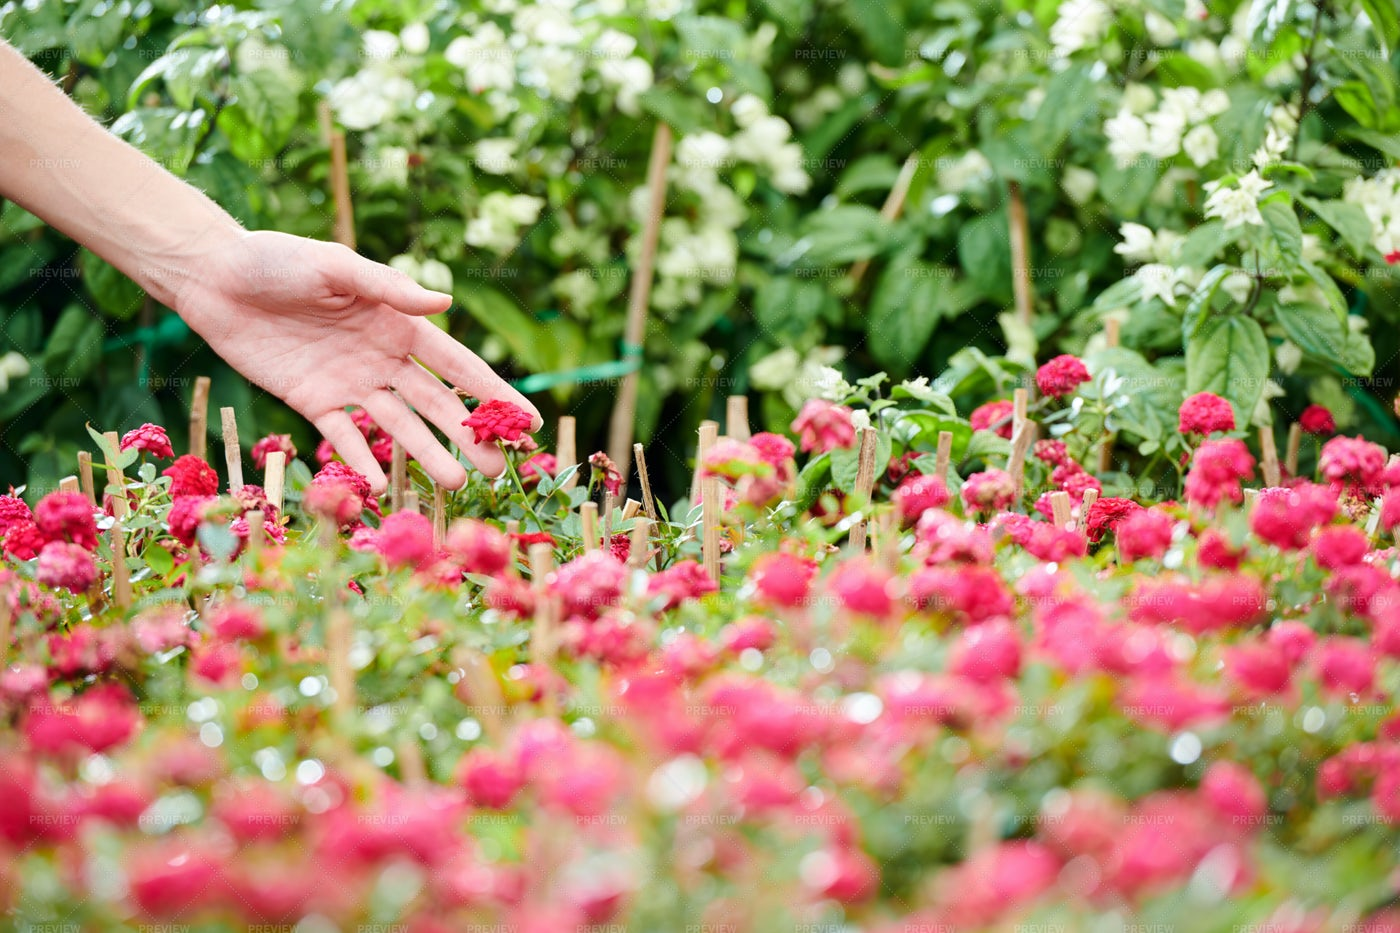 Woman Touching Blooming Flowers: Stock Photos